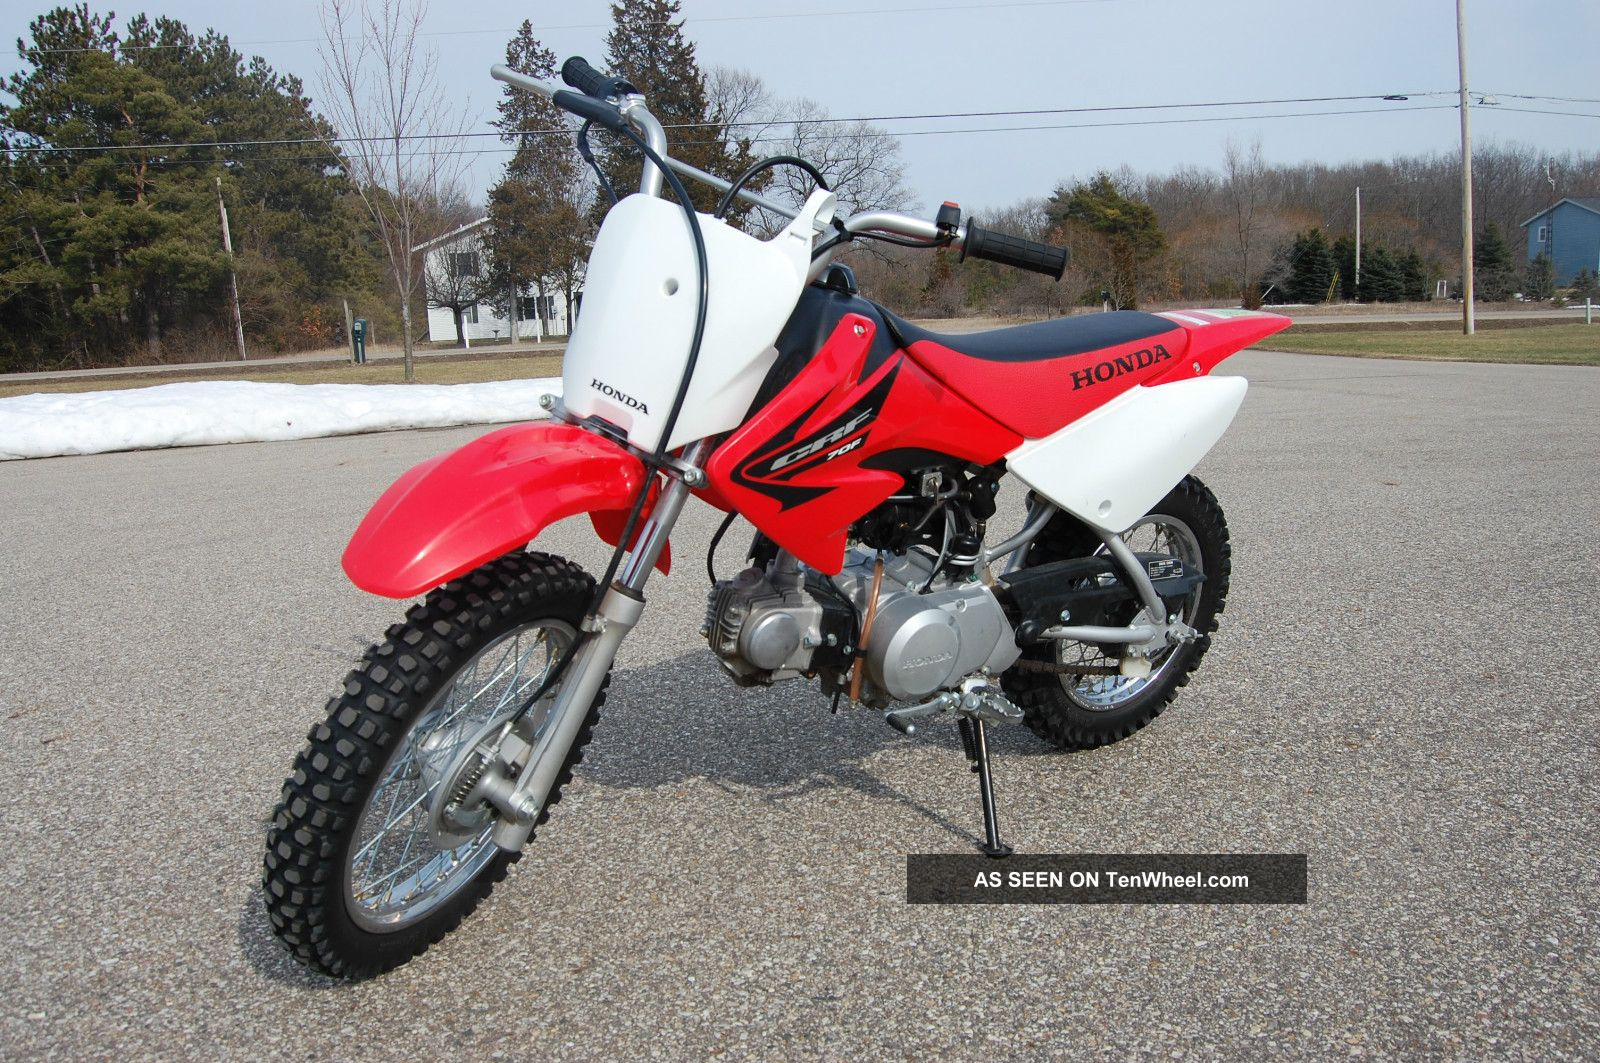 Honda Crf Dirt Bike Condition Same As Xr Lgw on Custom Honda Xr 125